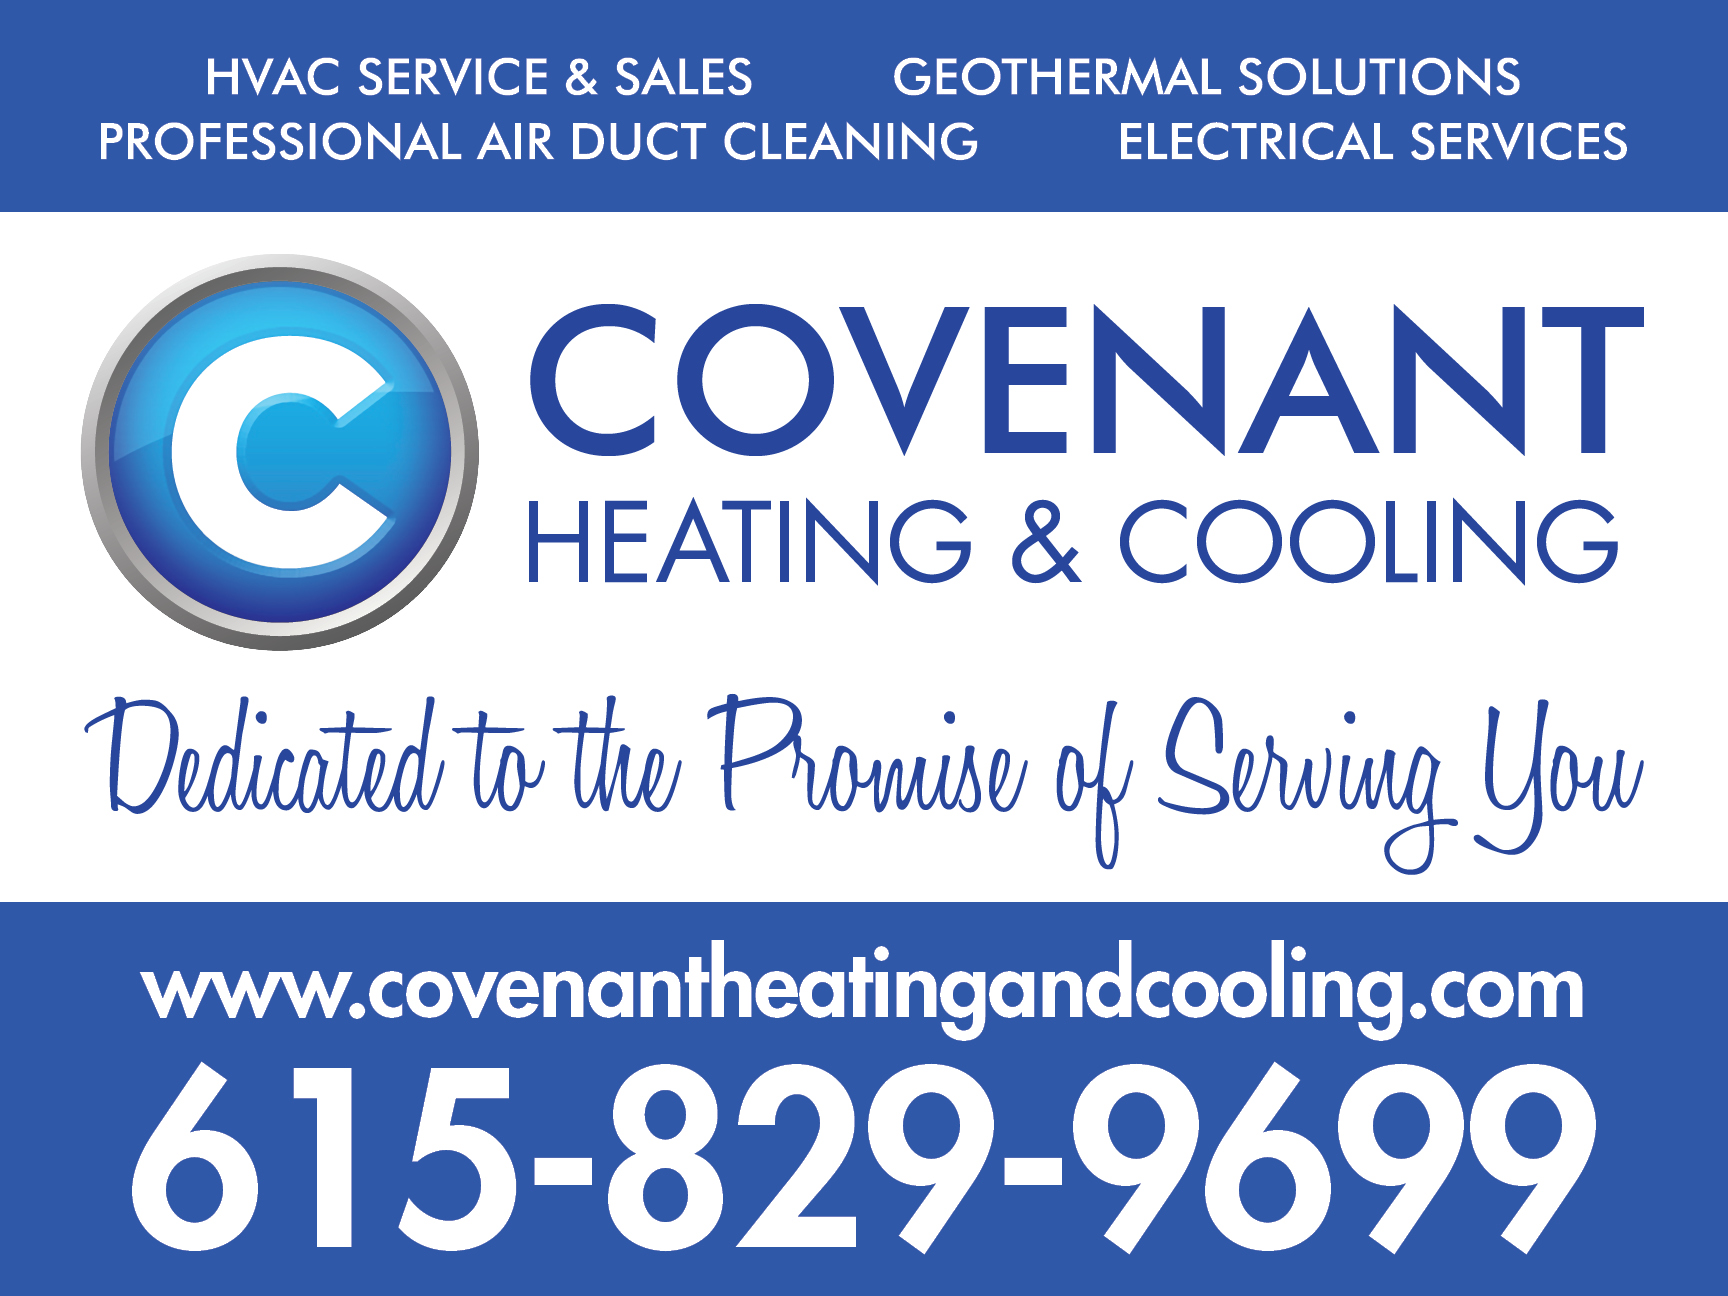 Service_Covenant Heating & Cooling